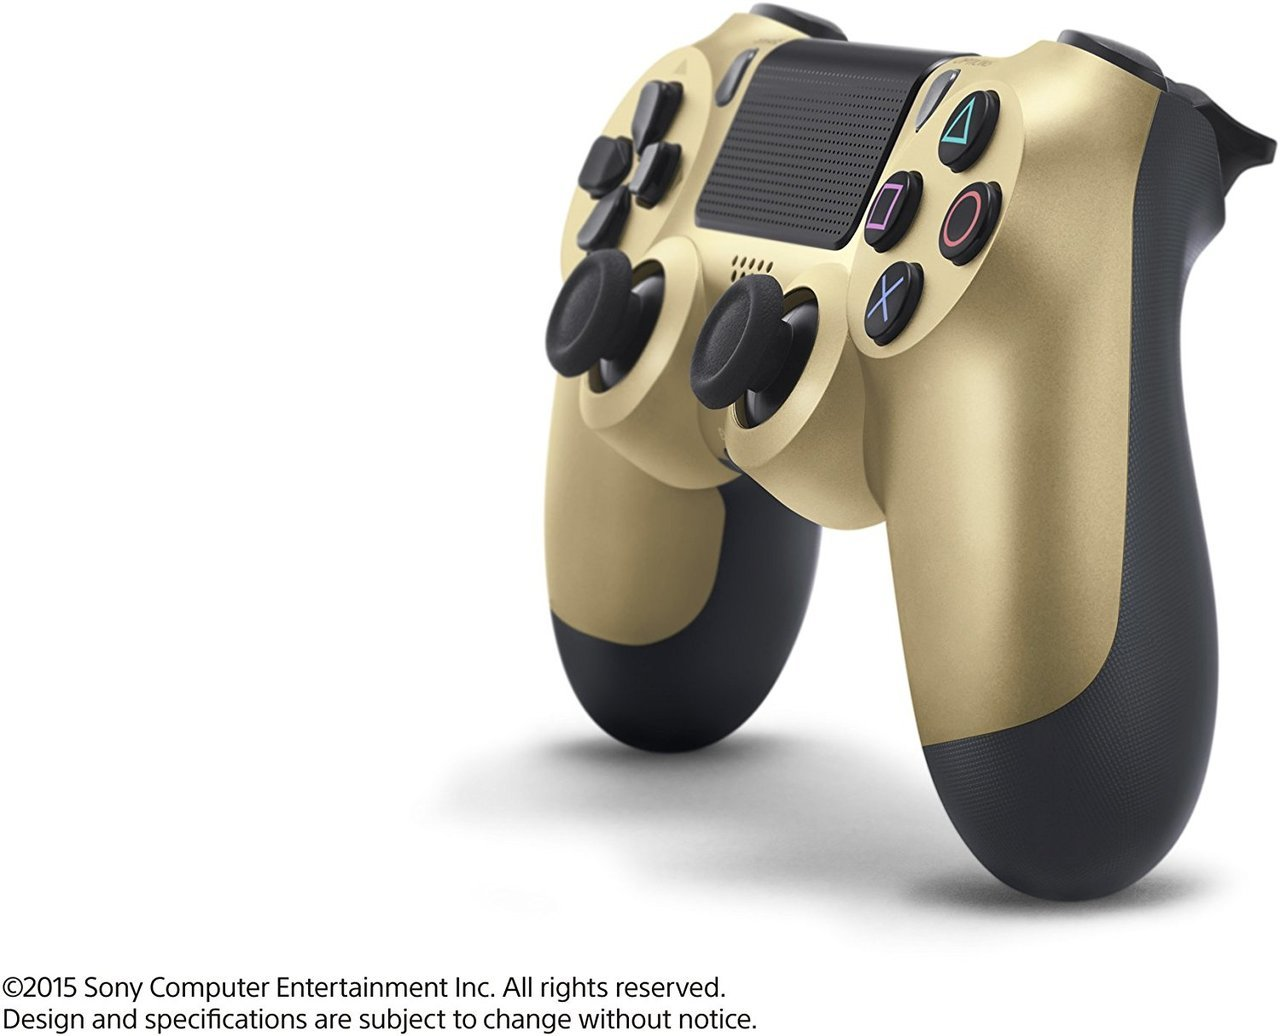 DualShock 4 Wireless Controller For PlayStation 4 Gold - Sony